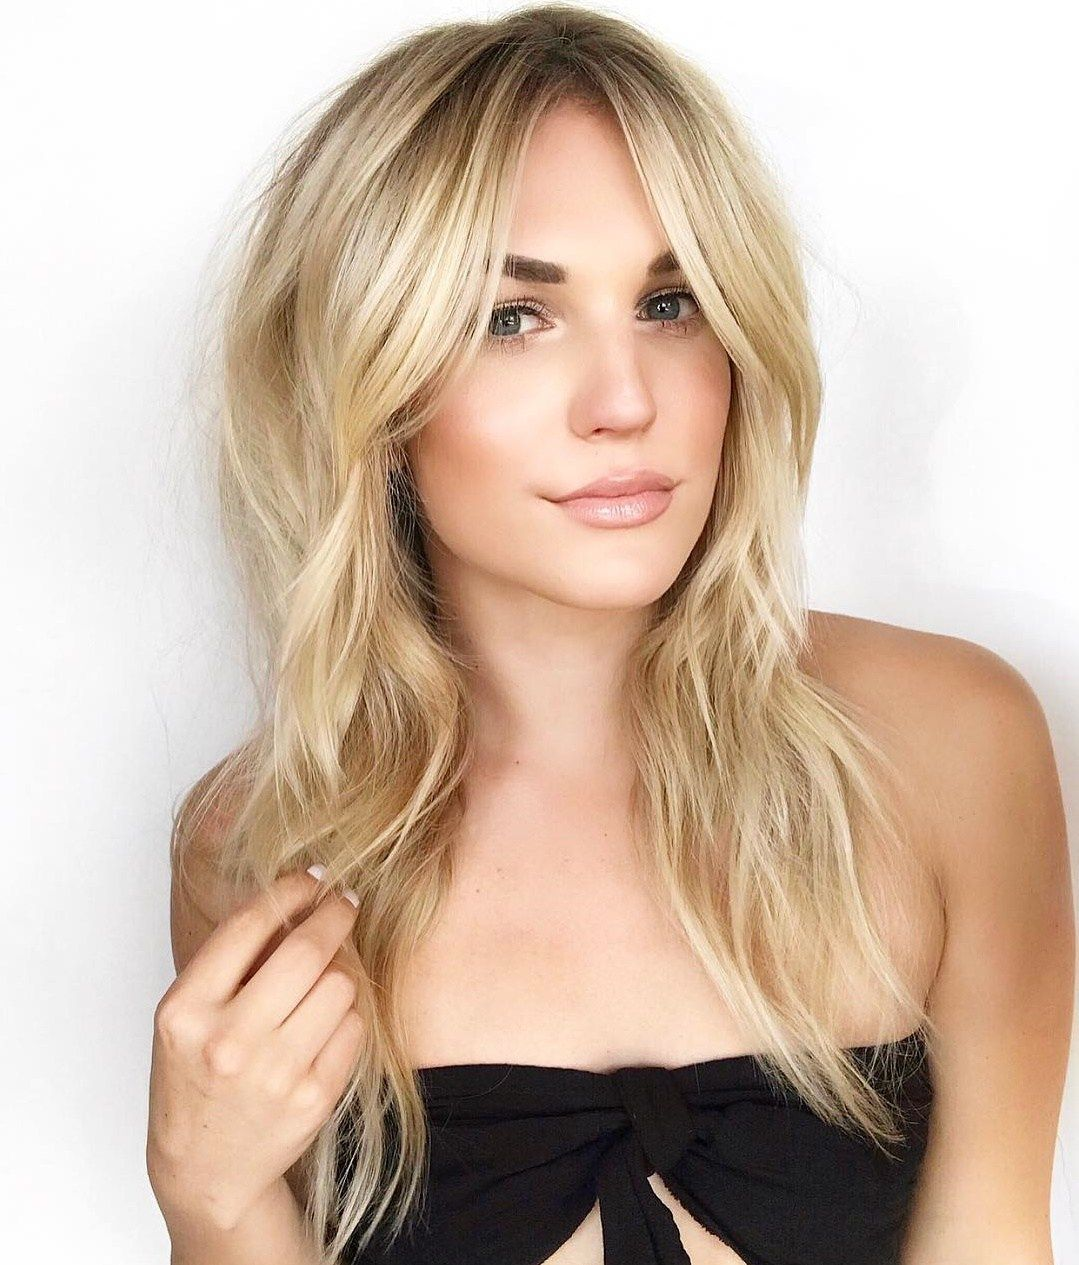 14++ Hairstyles for long thin hair female ideas in 2021